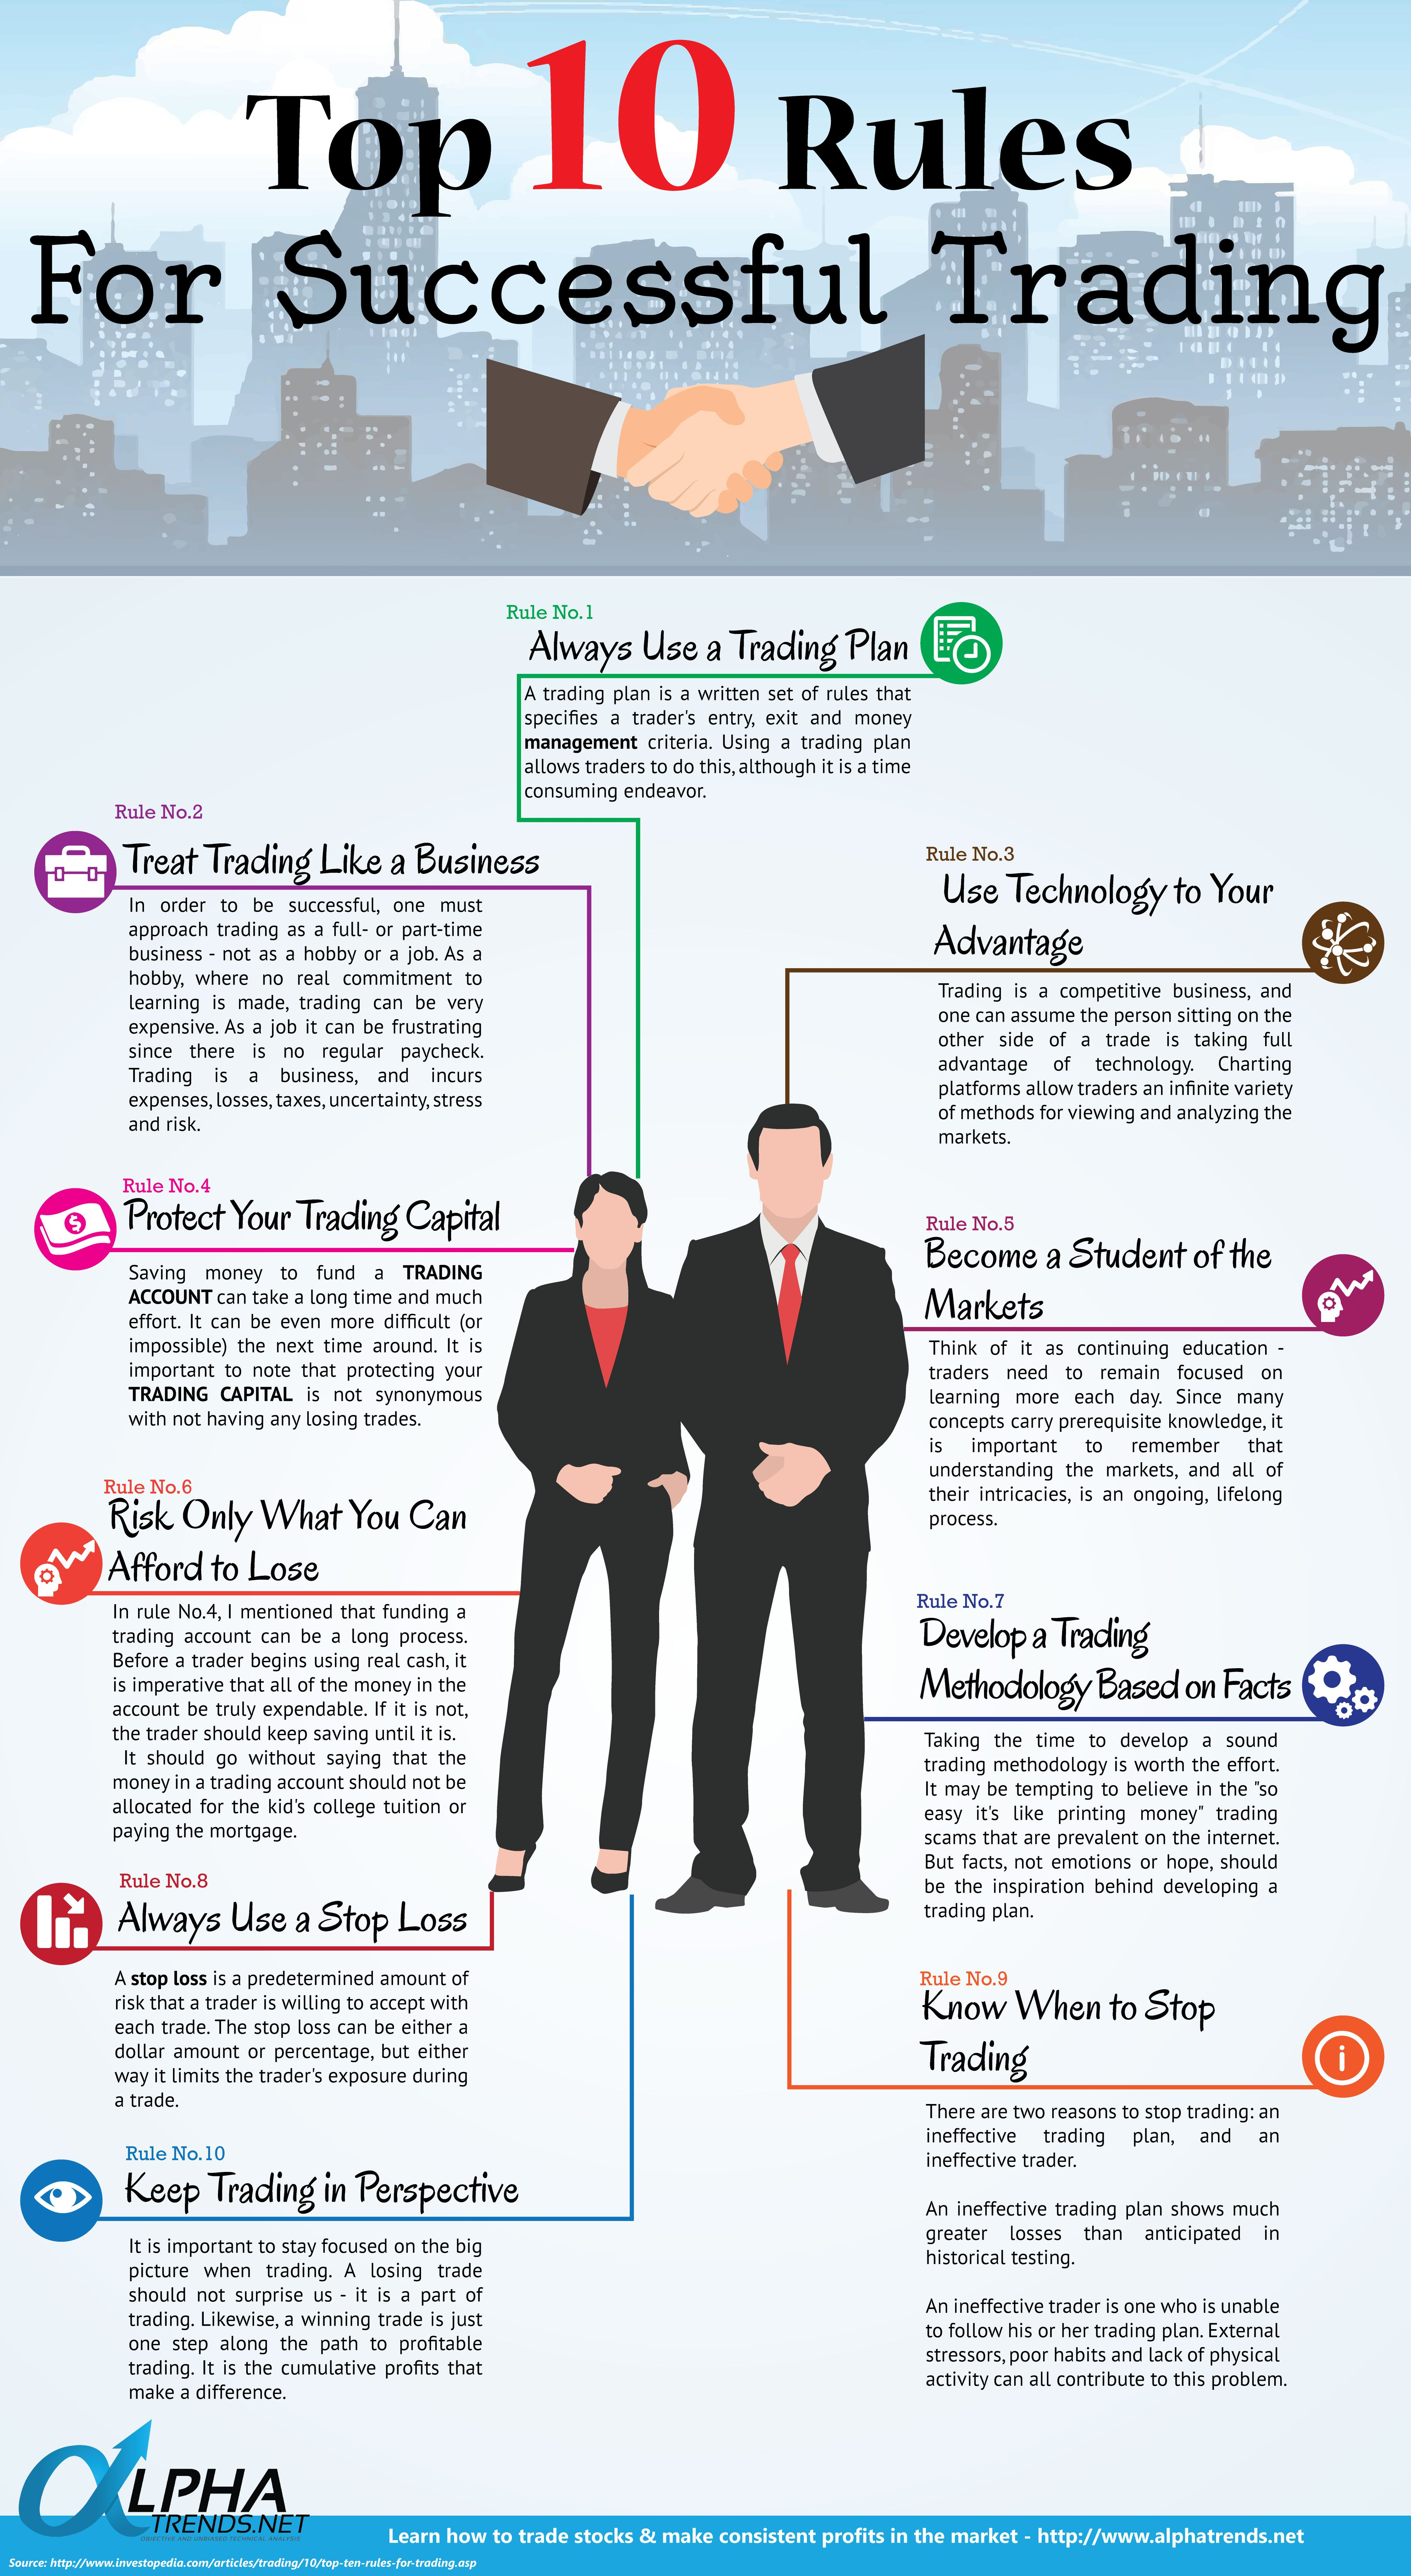 Top 10 Rules For Successful Trading Infographic If You Want To Be